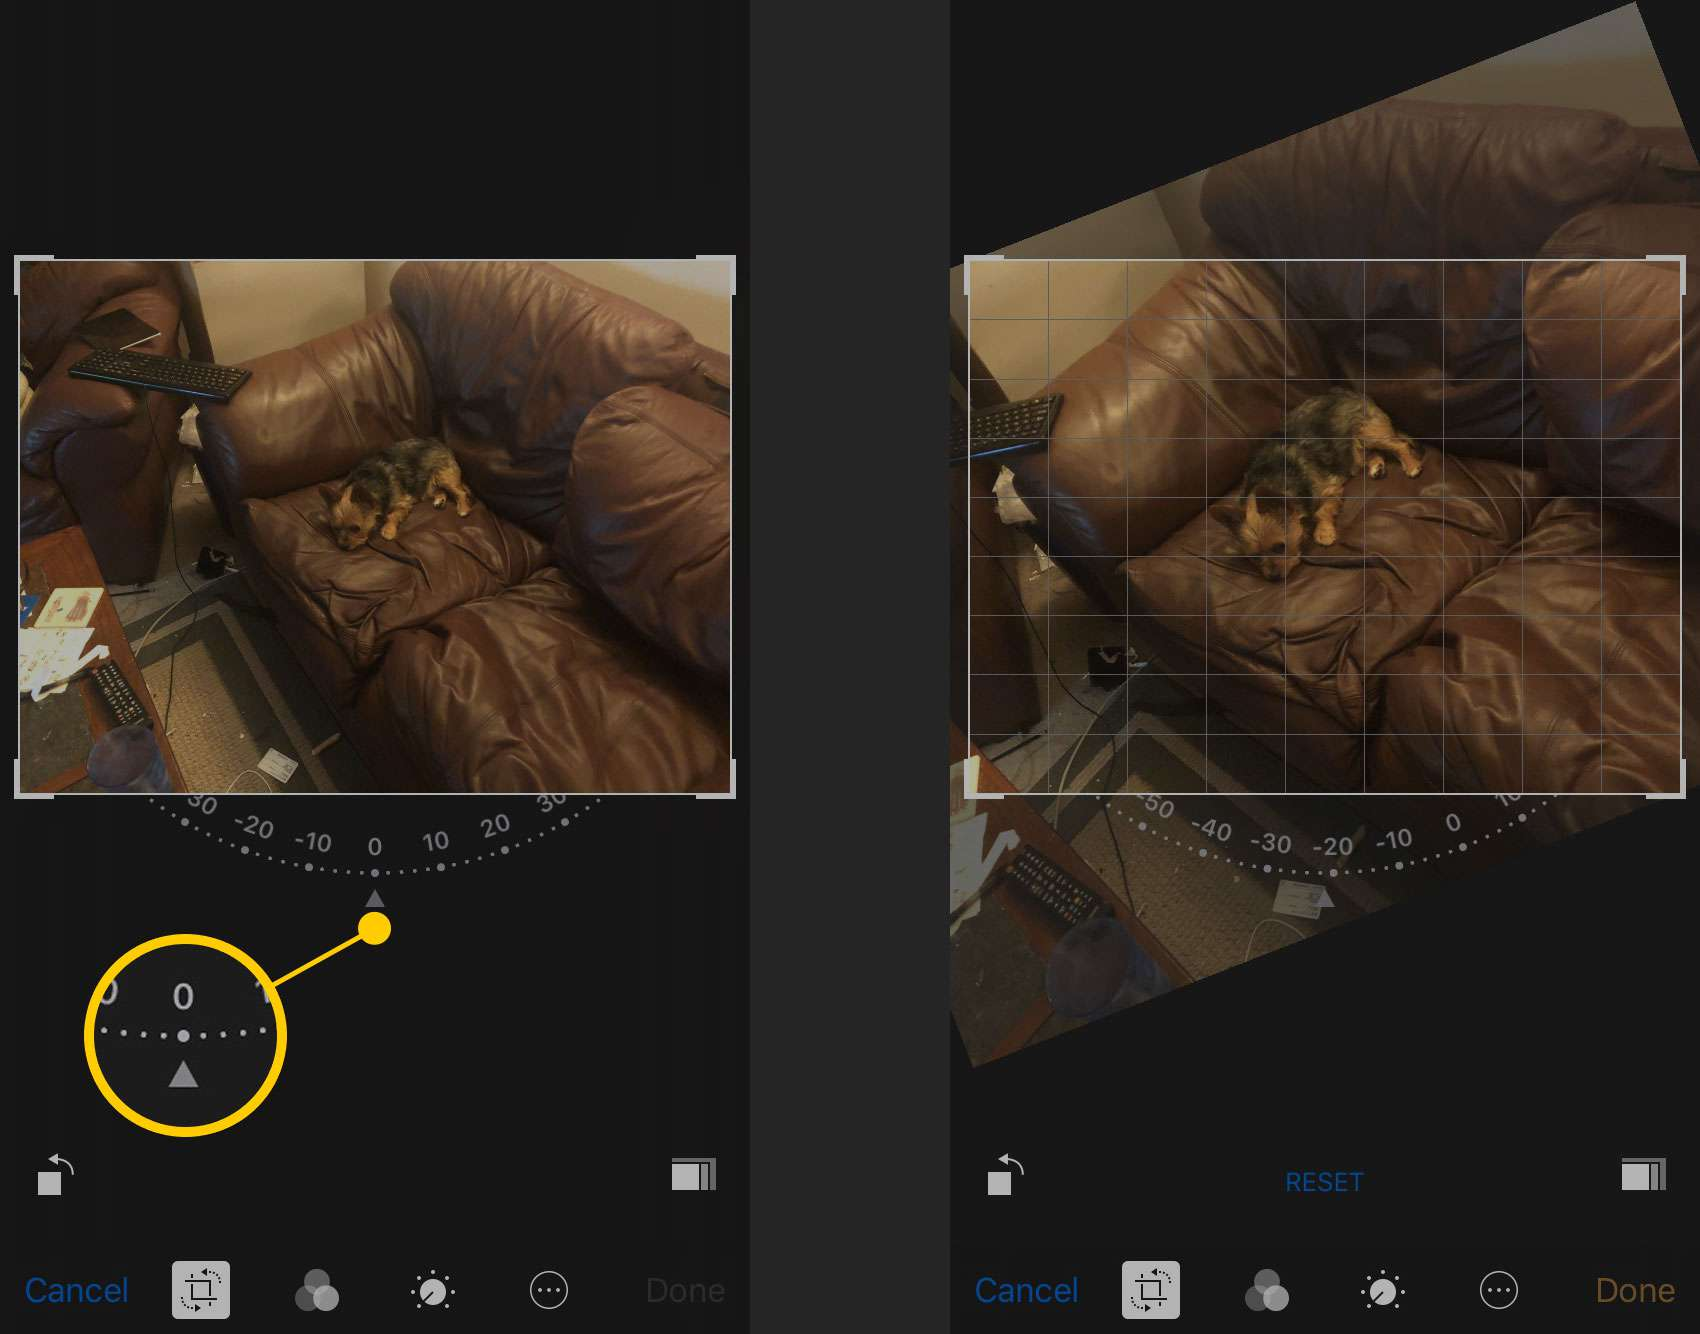 Free-rotate tool in Photos on iPhone